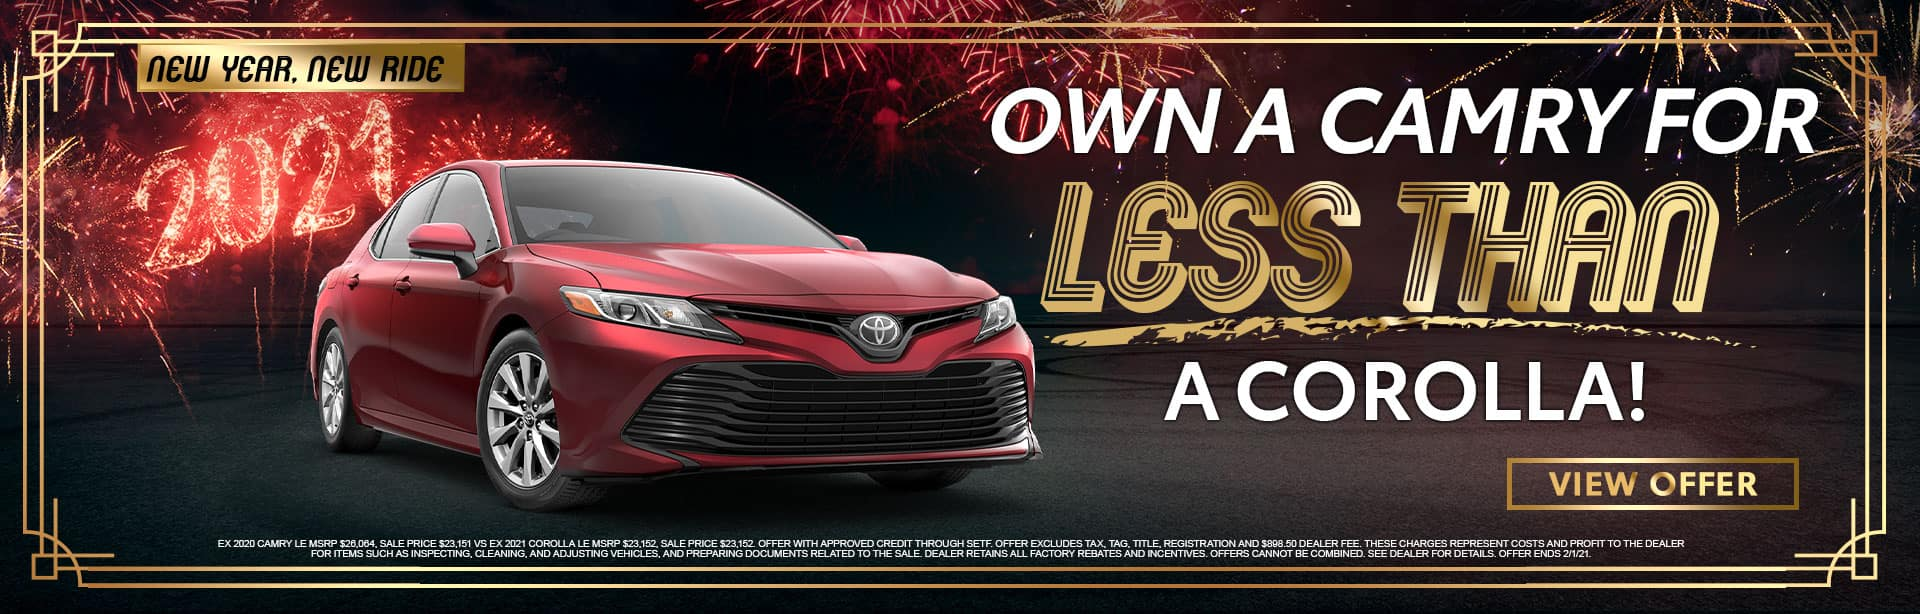 Own a Camry for Less Than a Corolla | Bev Smith Toyota